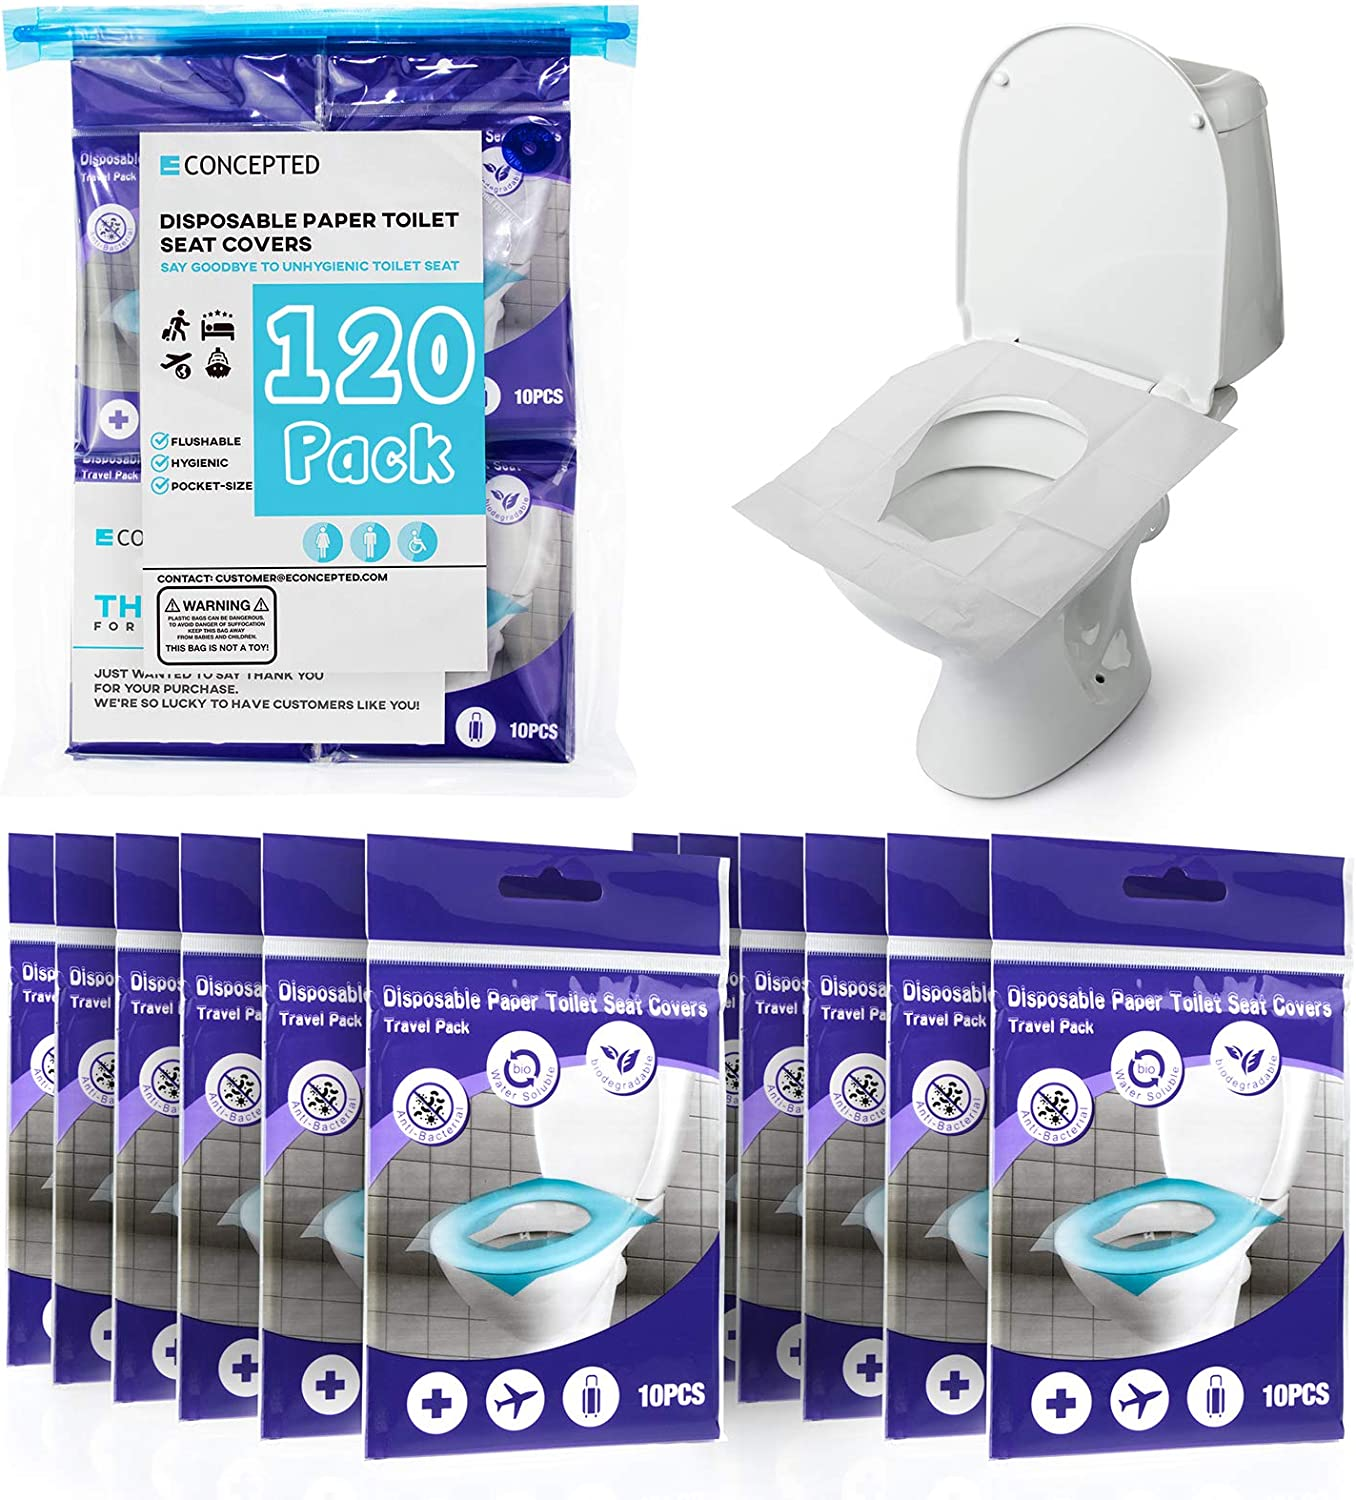 120 Toilet Seat Covers Disposable - Waterproof Paper Toilets Accessories Self-Disposable Half-Fold Seat Covers for Travel Adults Kids Baby Toddlers Potty Training Liners in Public Restrooms